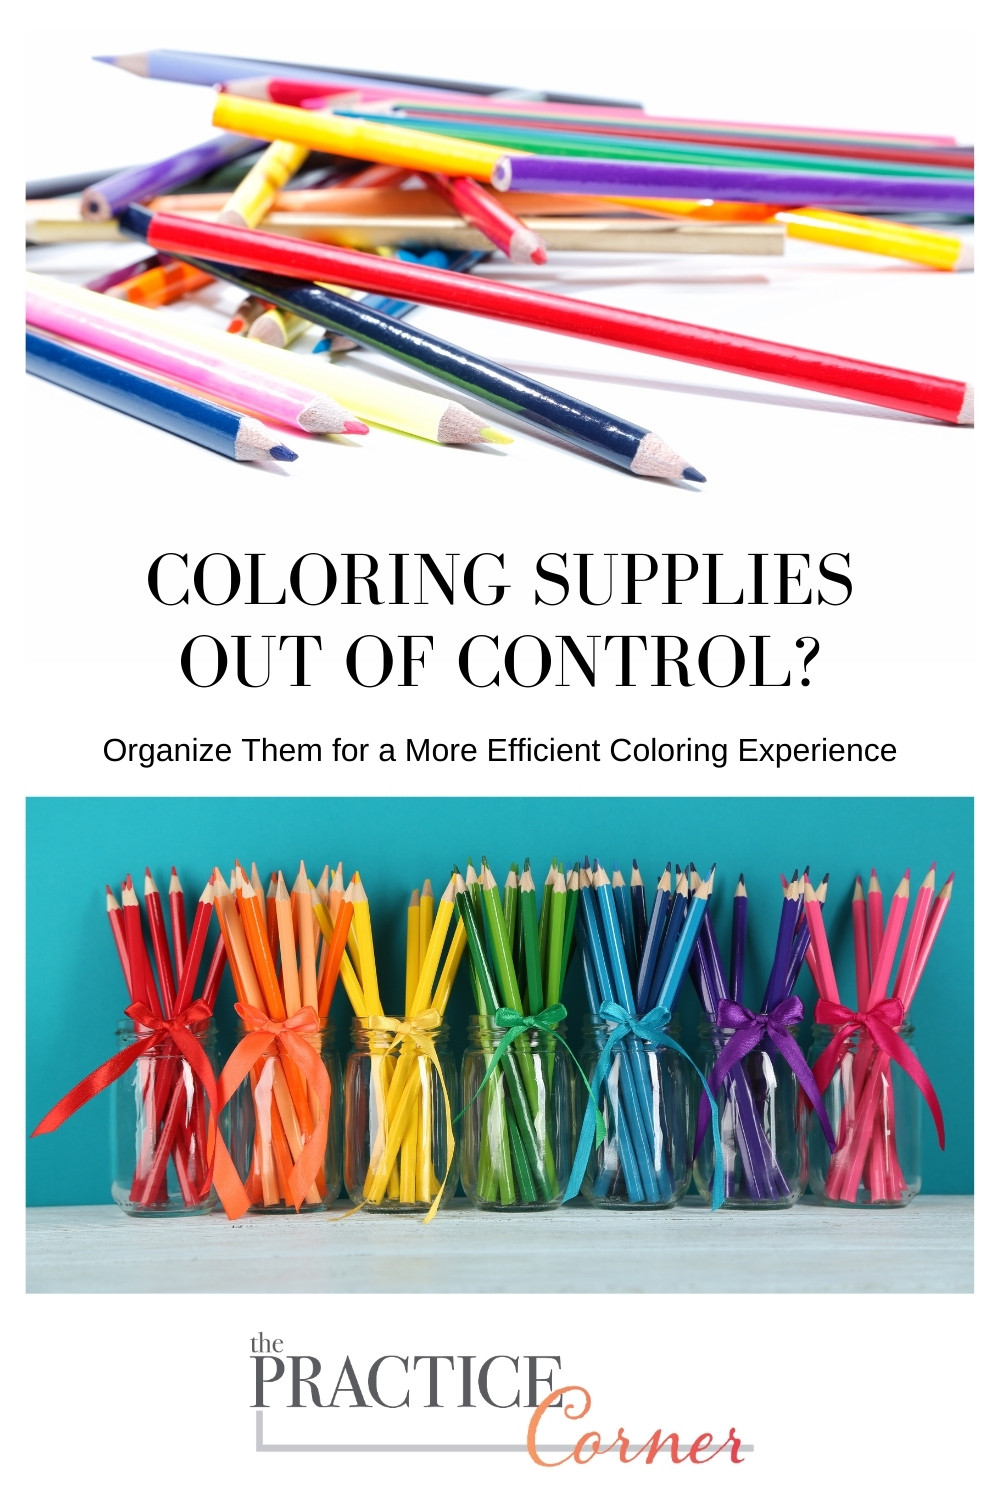 Organize your art supplies for more efficient coloring experience. | The Practice Corner | How to improve your coloring | #organizeartsupplies